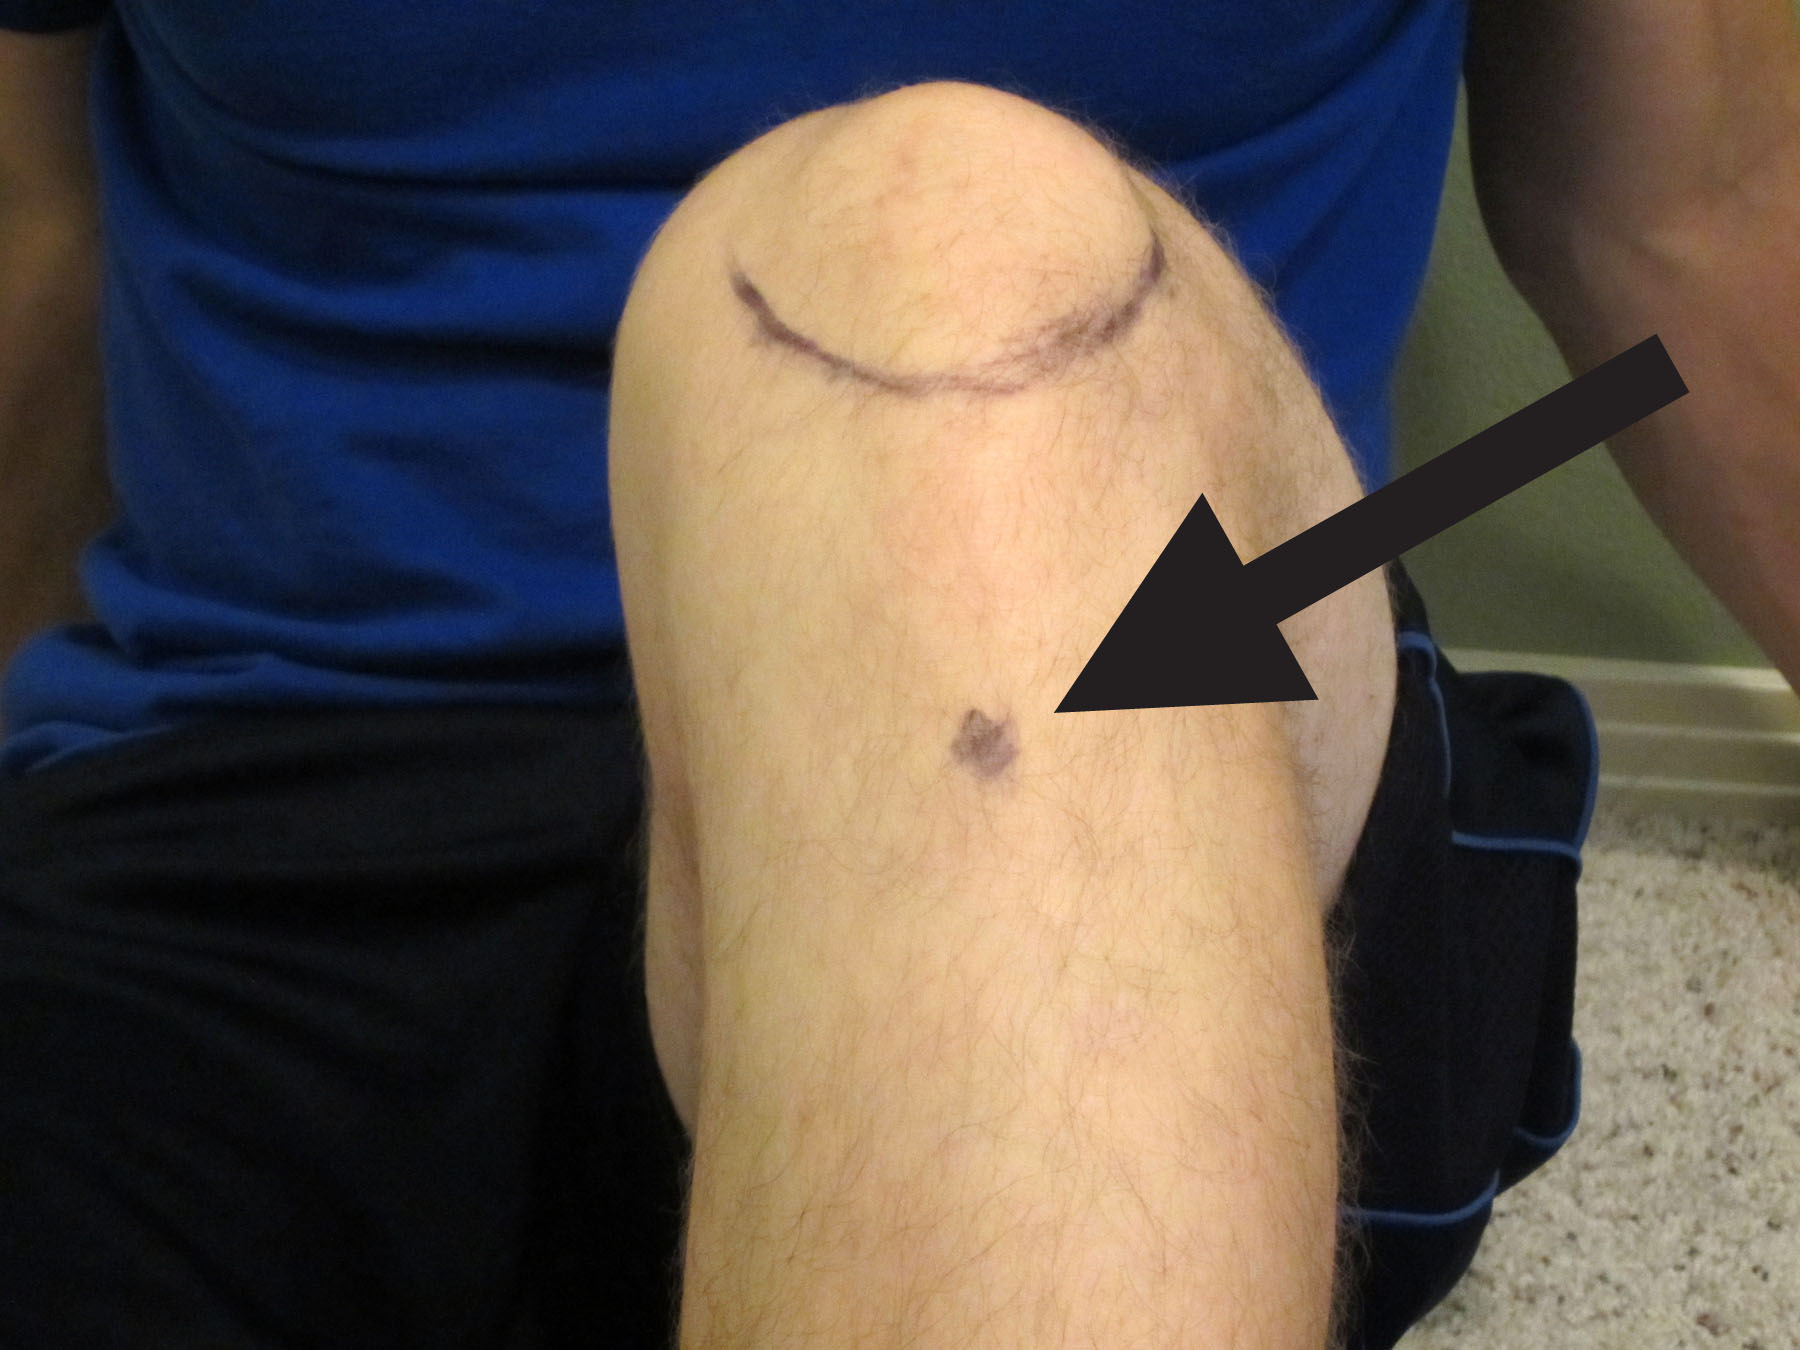 Q & A: My Top 5 Tips on How to Self-Treat Osgood-Schlatter